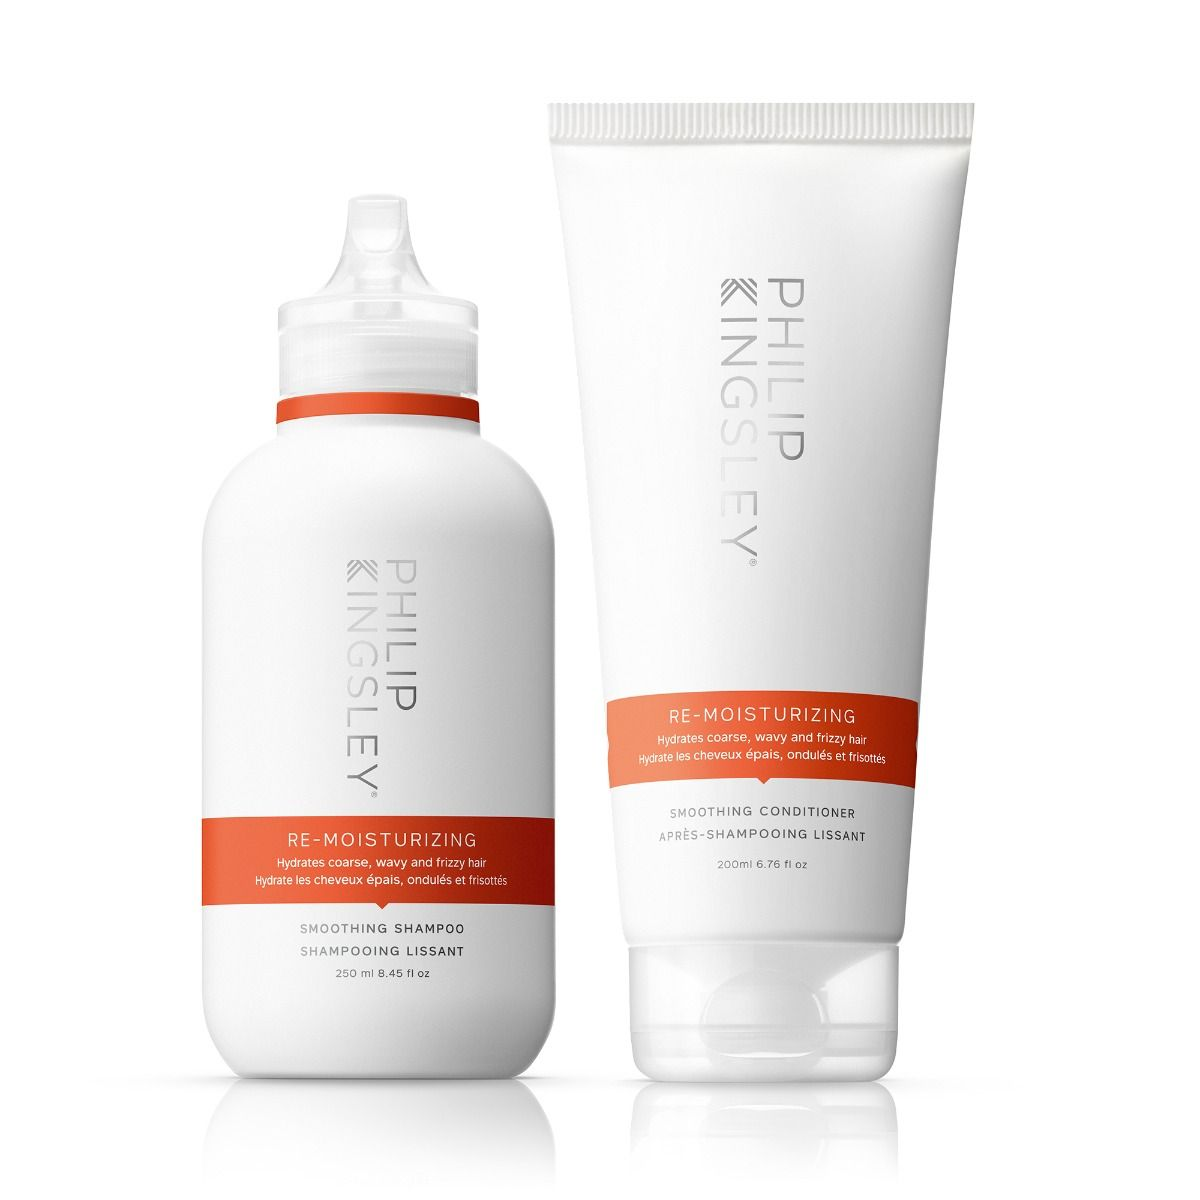 Re-Moisturizing Smoothing Shampoo & Re-Moisturizing Smoothing Conditioner Duo